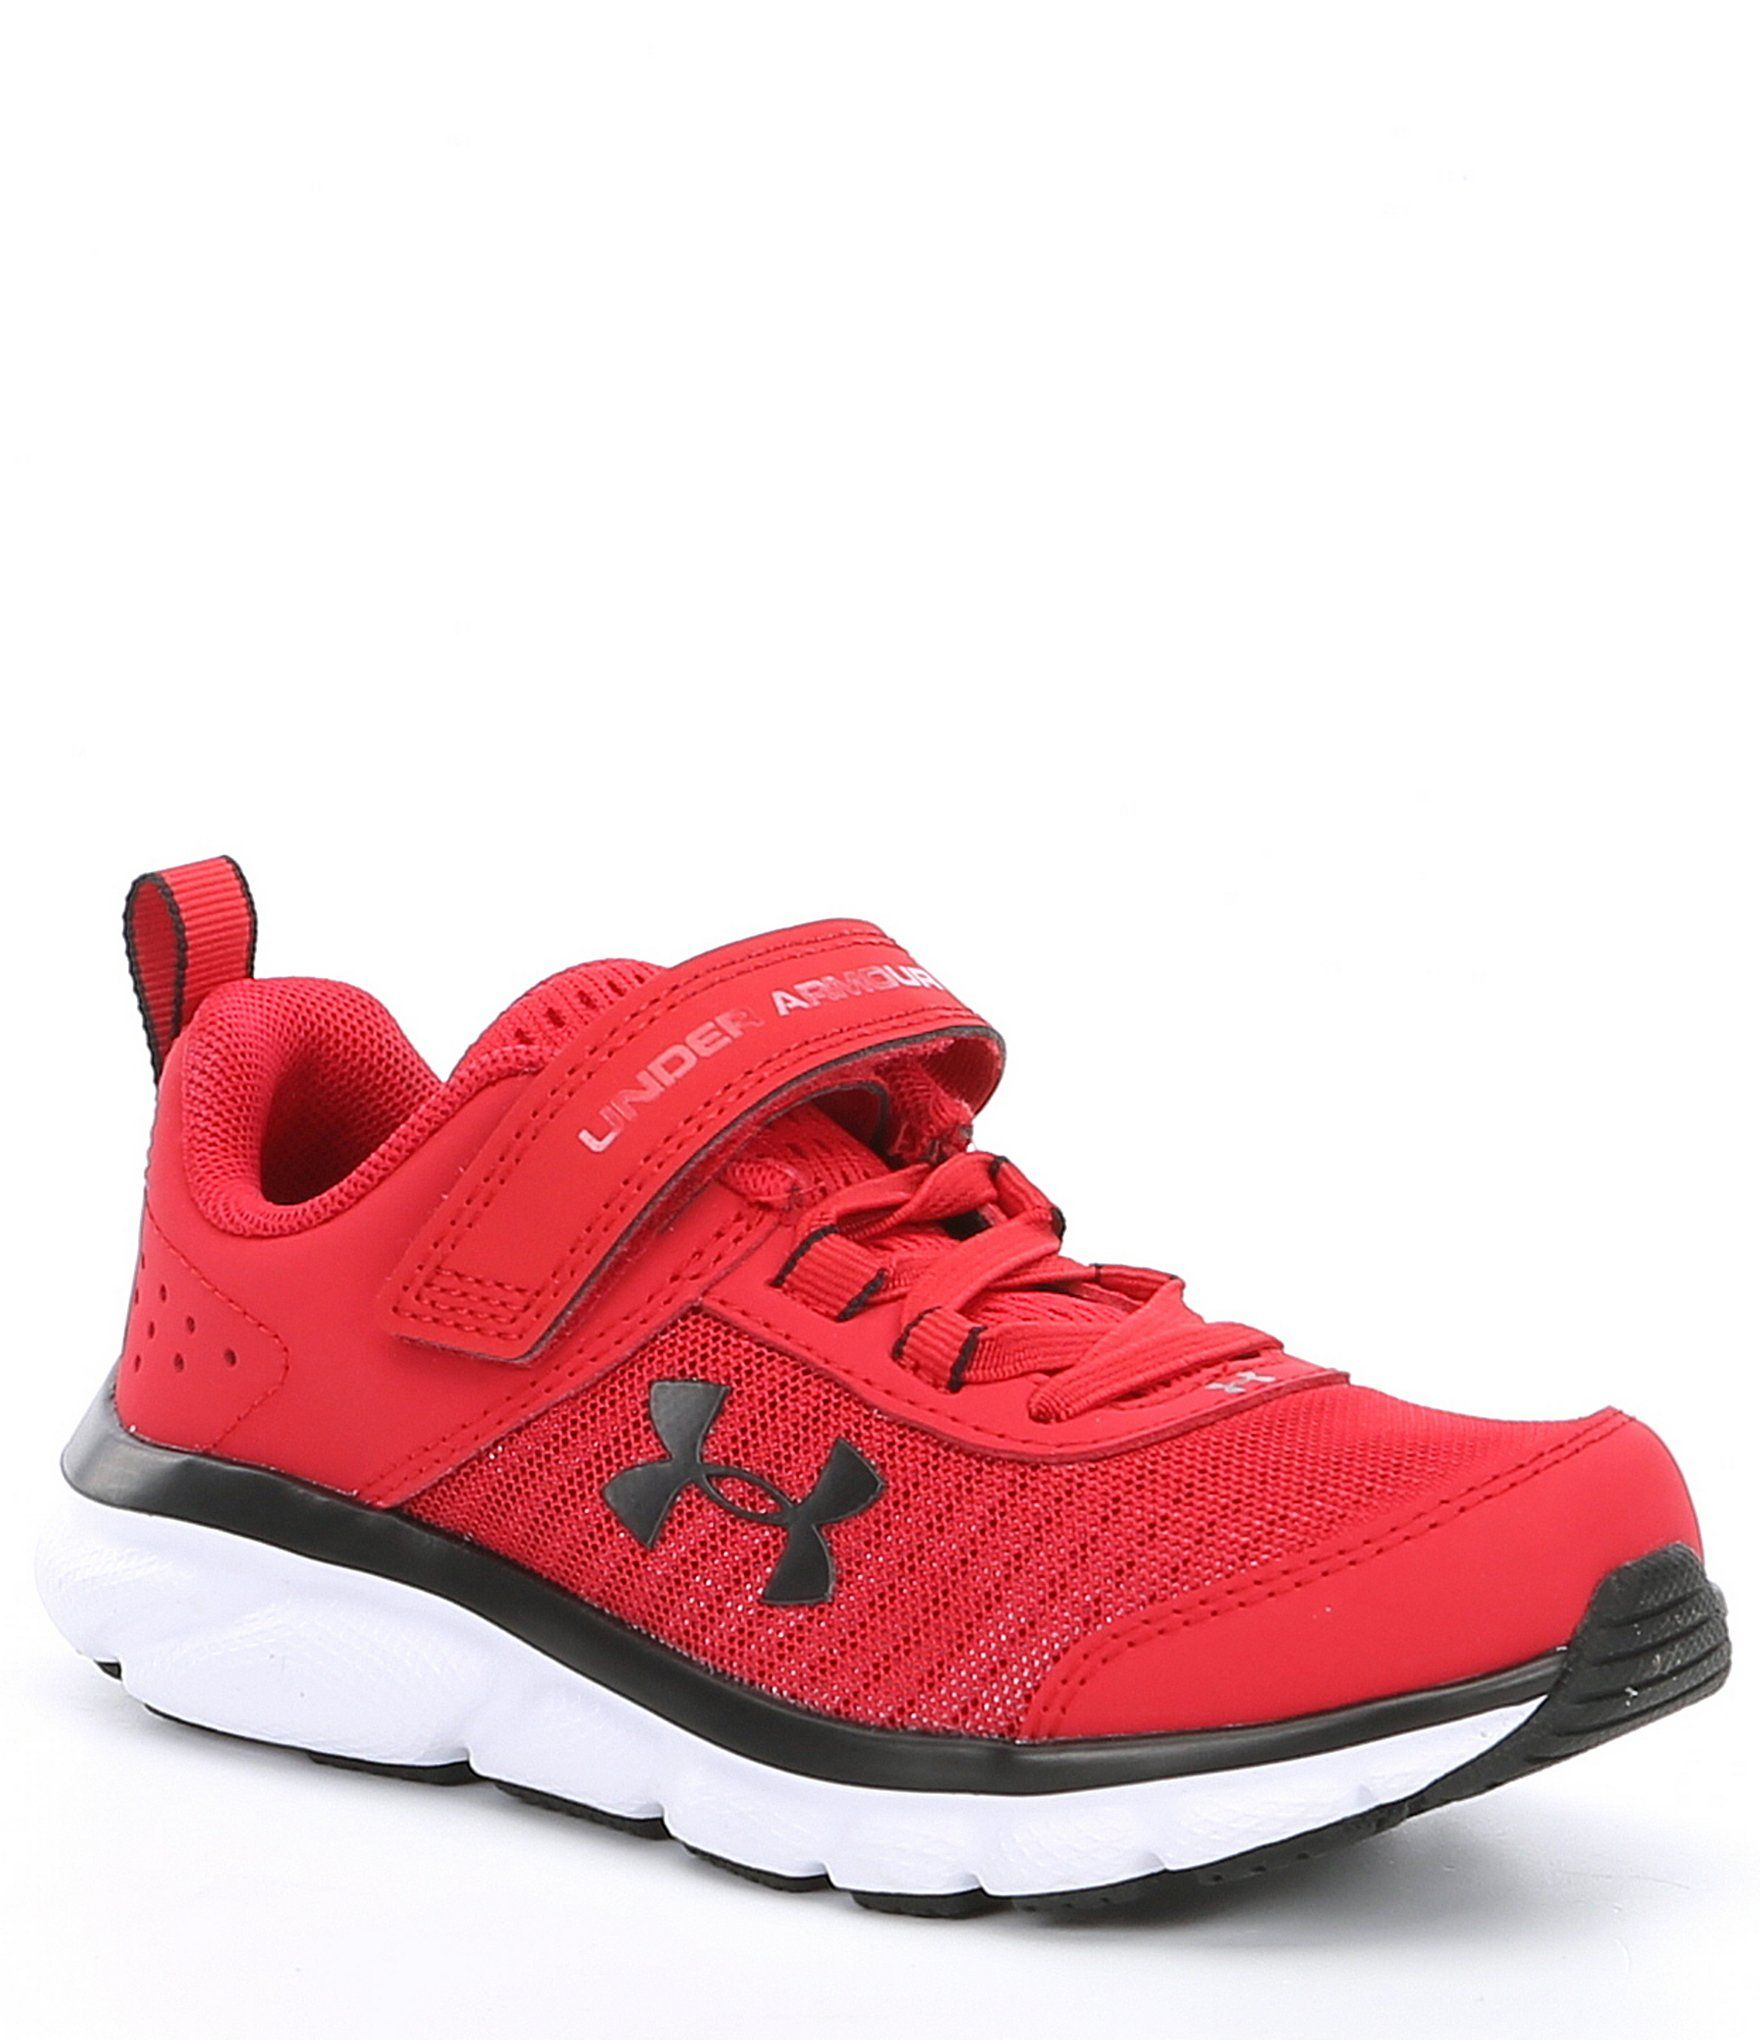 Mens Under Armour Rapid Red Running Shoes Lace Up Mesh Trainers